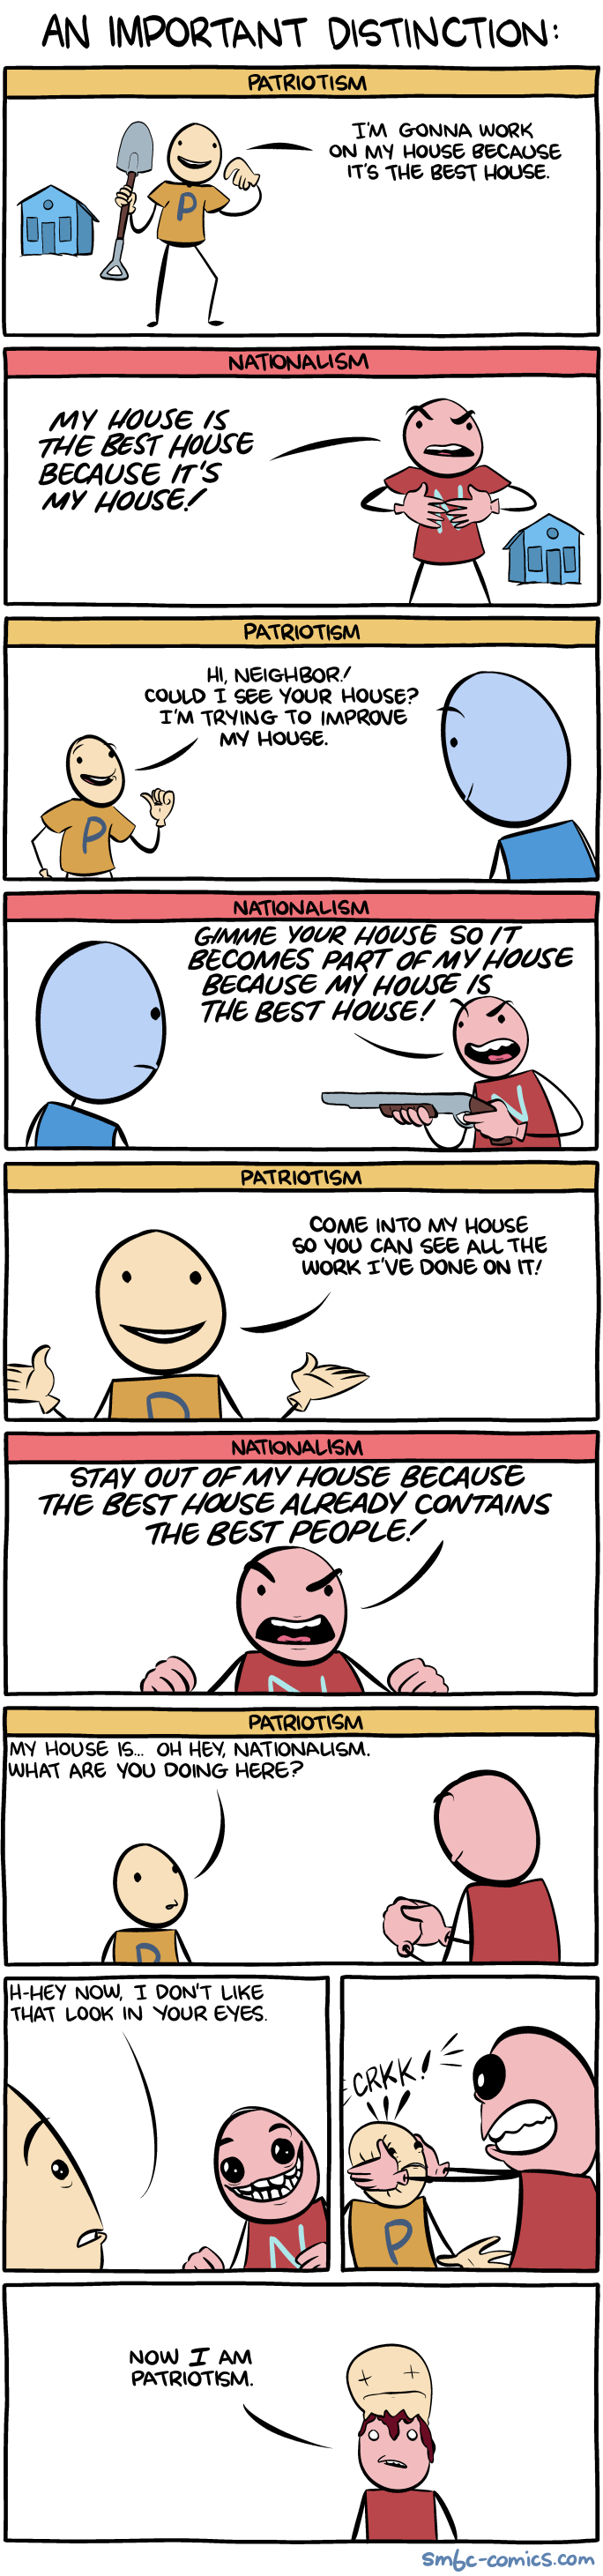 Saturday Morning Breakfast Cereal - An Important Distinction